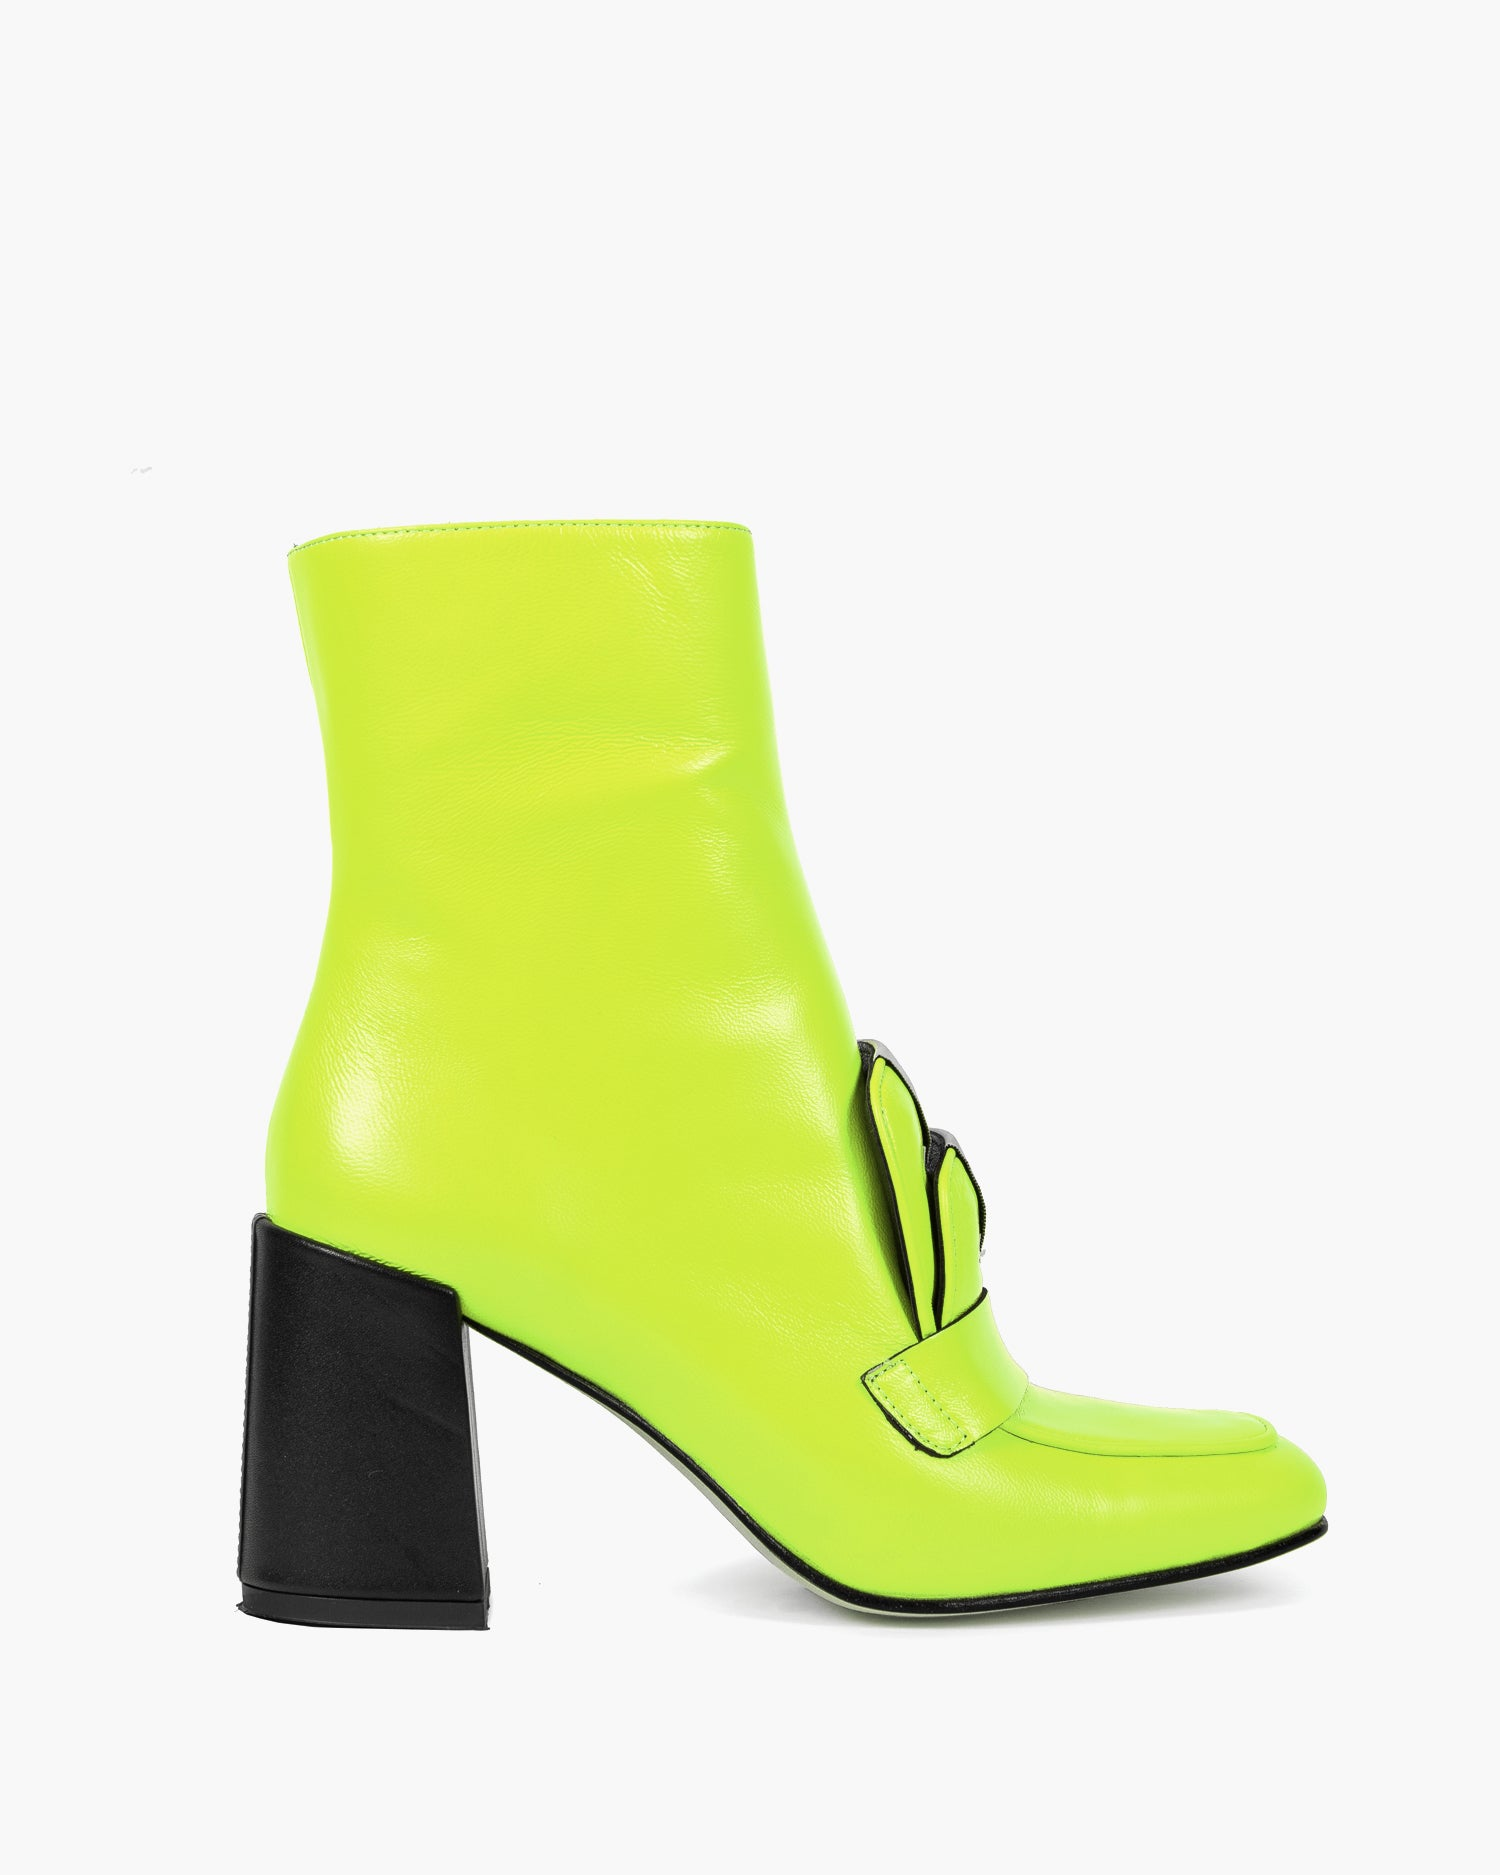 HAVVA Sportmaxx 86 Highlighter Yellow